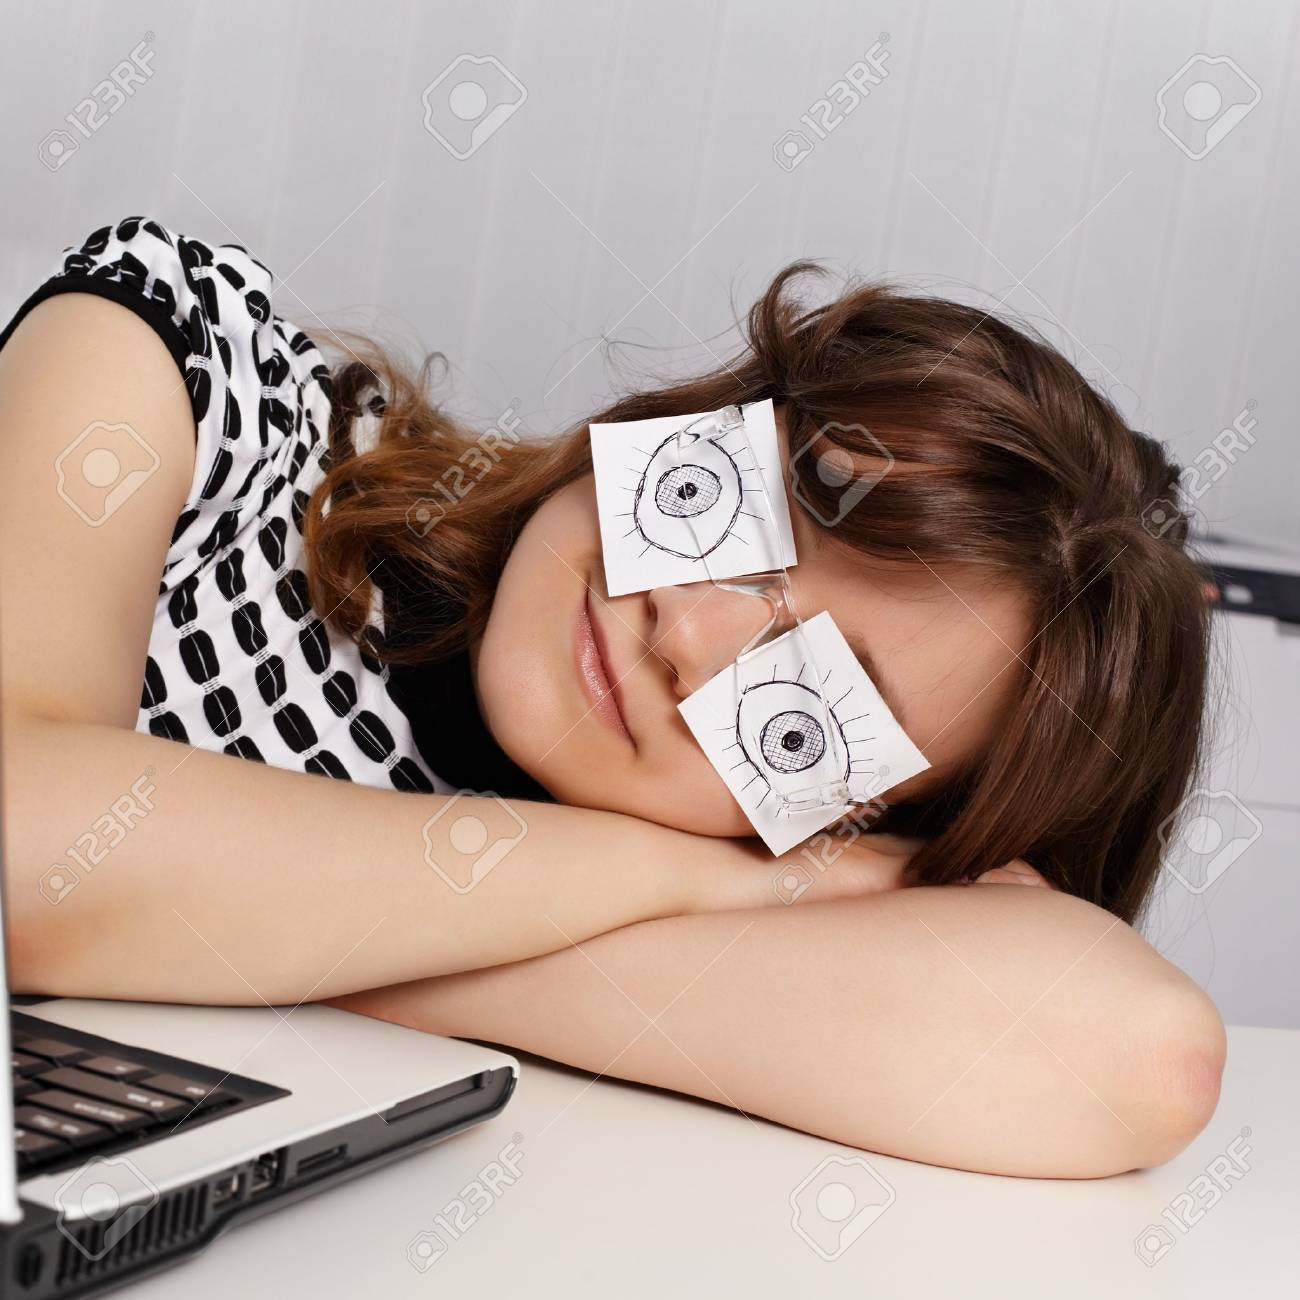 A young woman sleeps in the office during working hours Stock Photo - 11438846